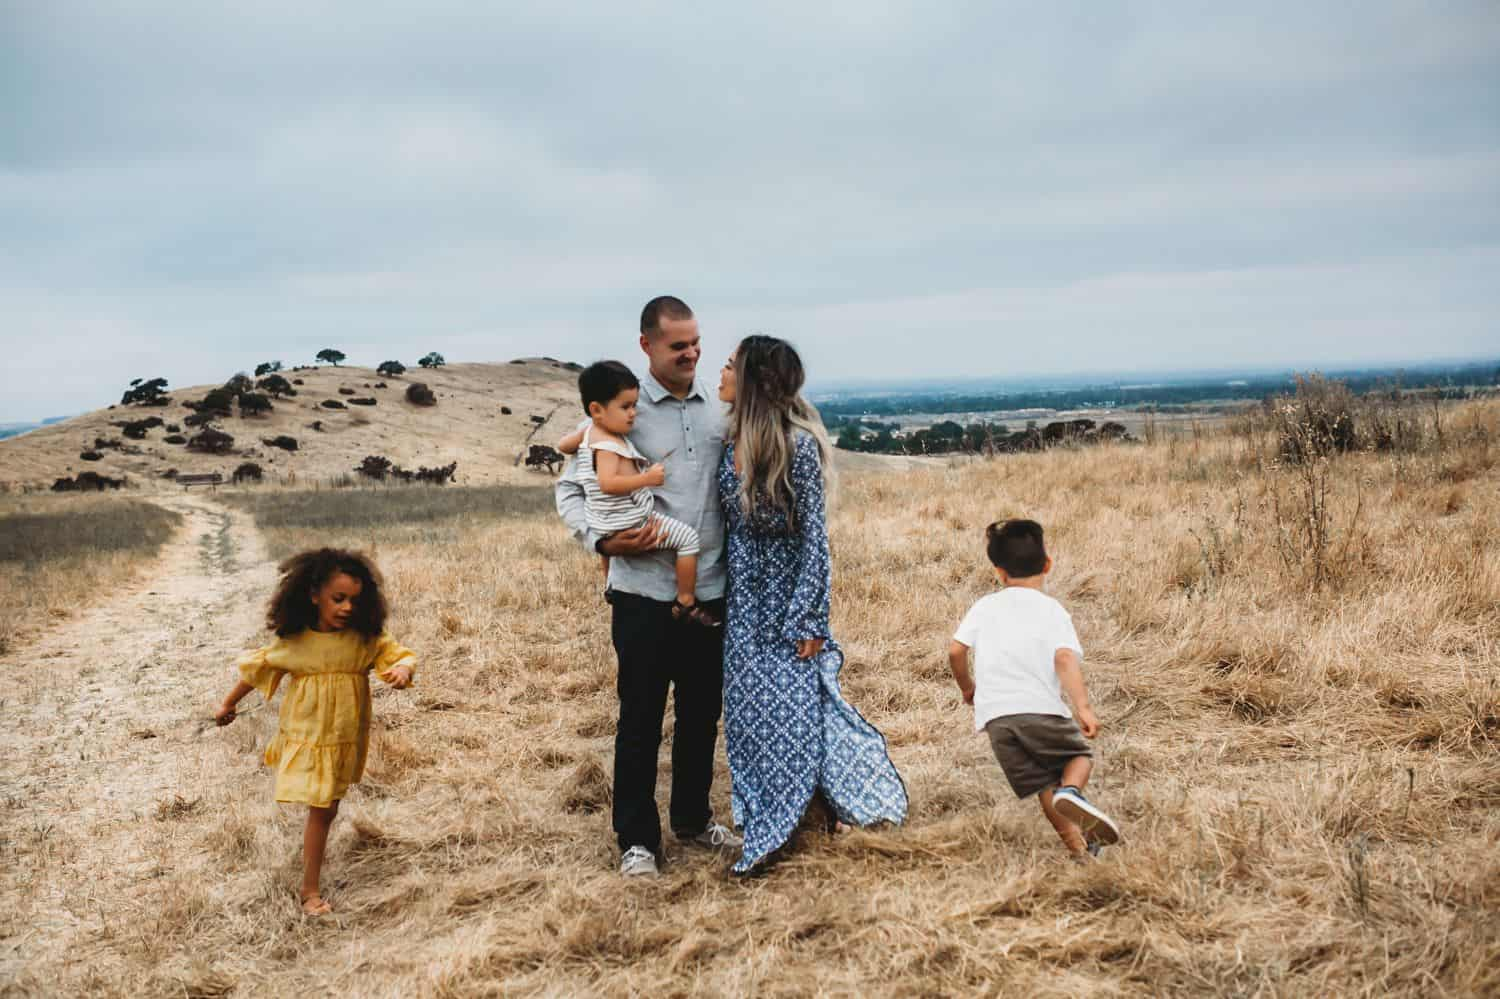 Two parents stand in a field holding their toddler while two older children run circles around them.